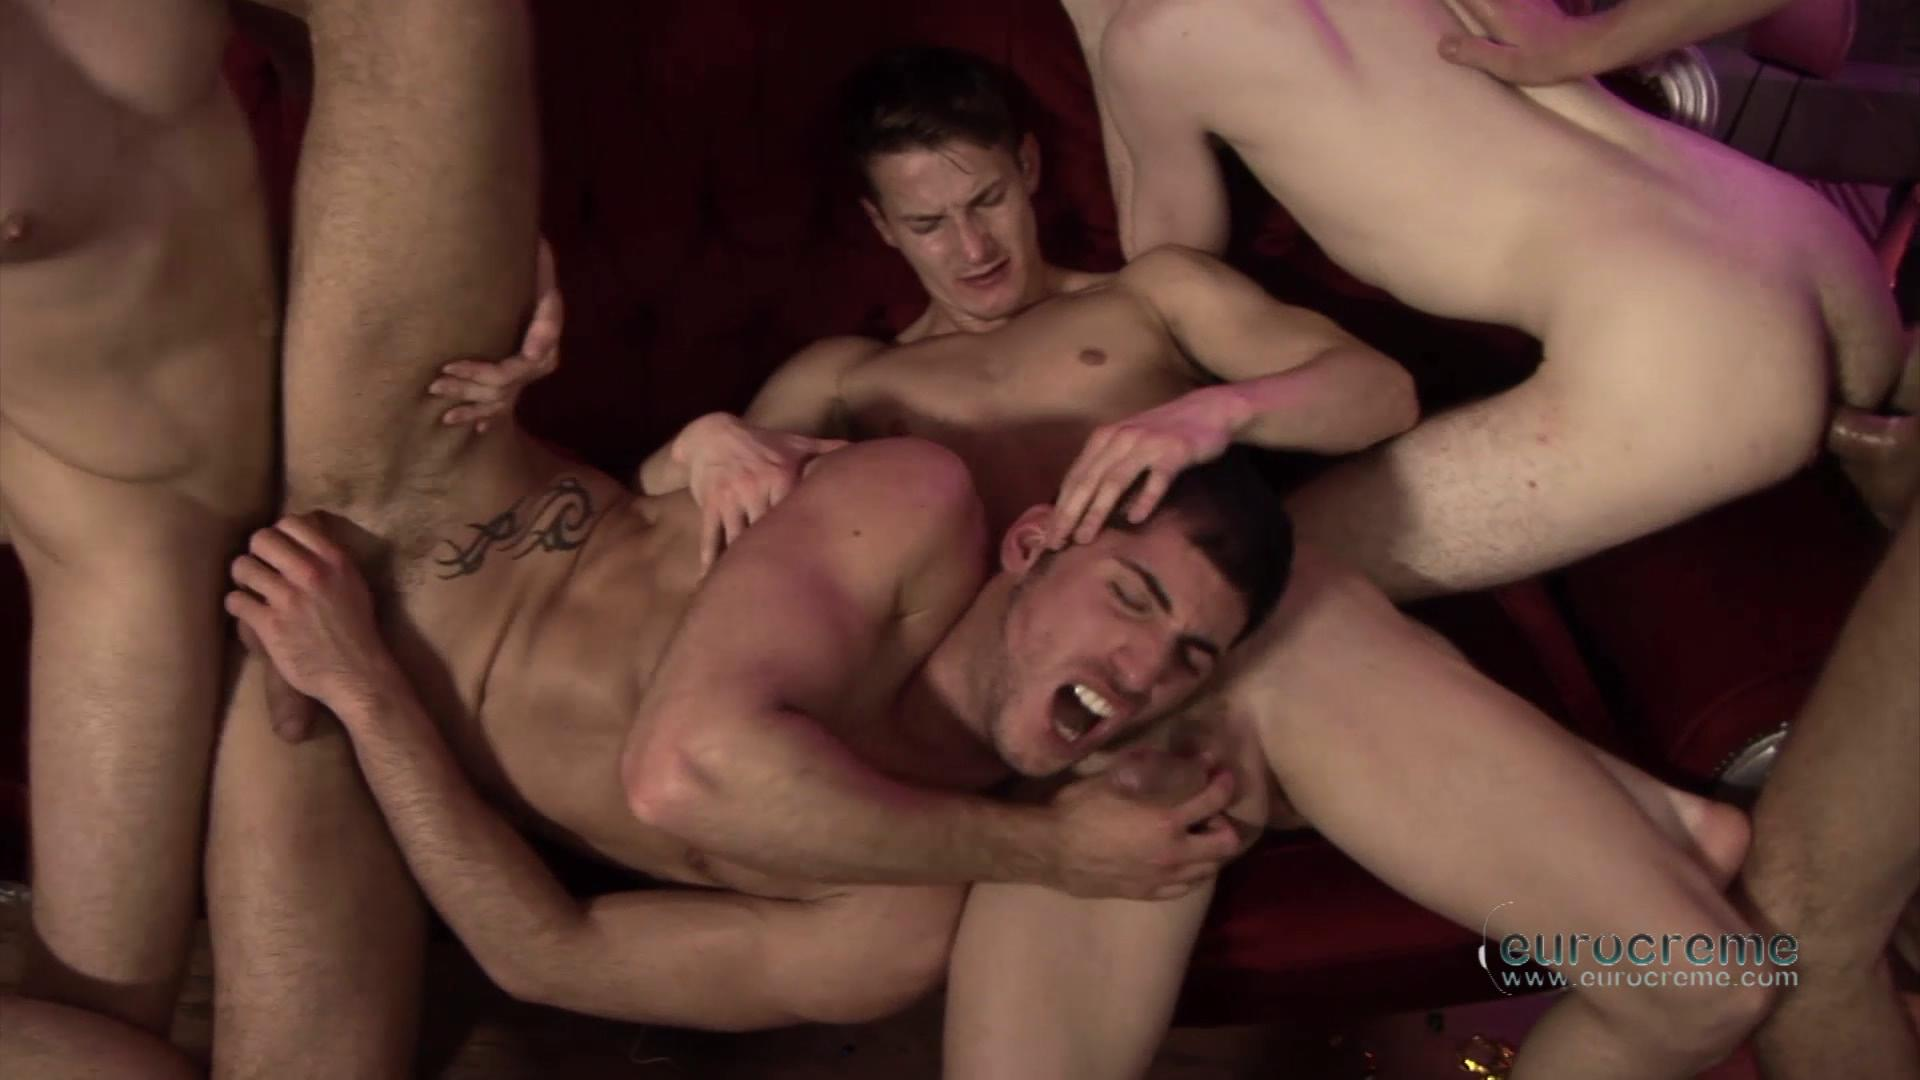 The DreamBoy Hotel: Bachelor Party Xvideo gay